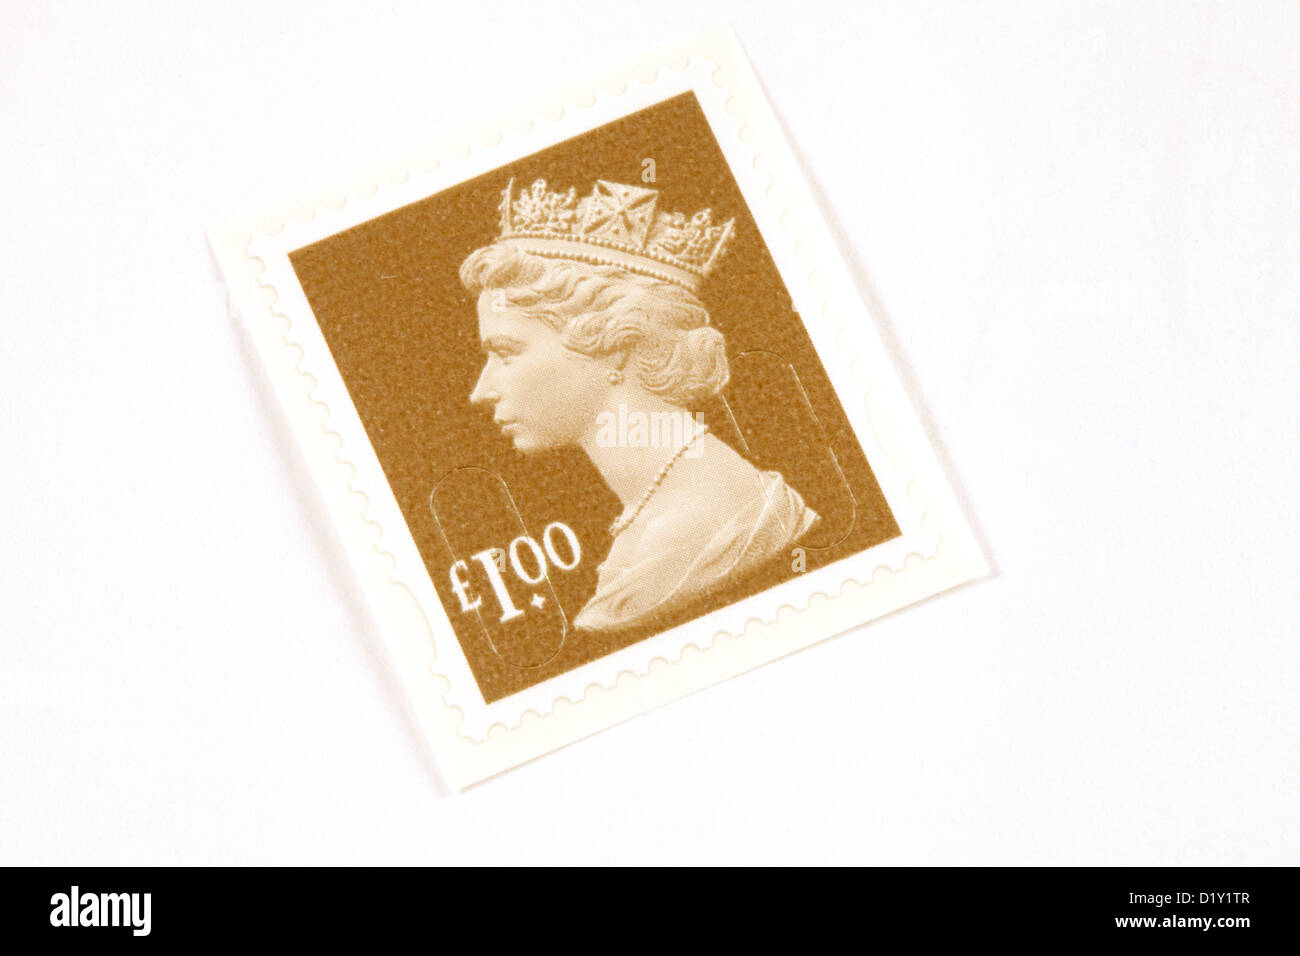 A UK £1 One Pound postage stamp for mail and post - Stock Image